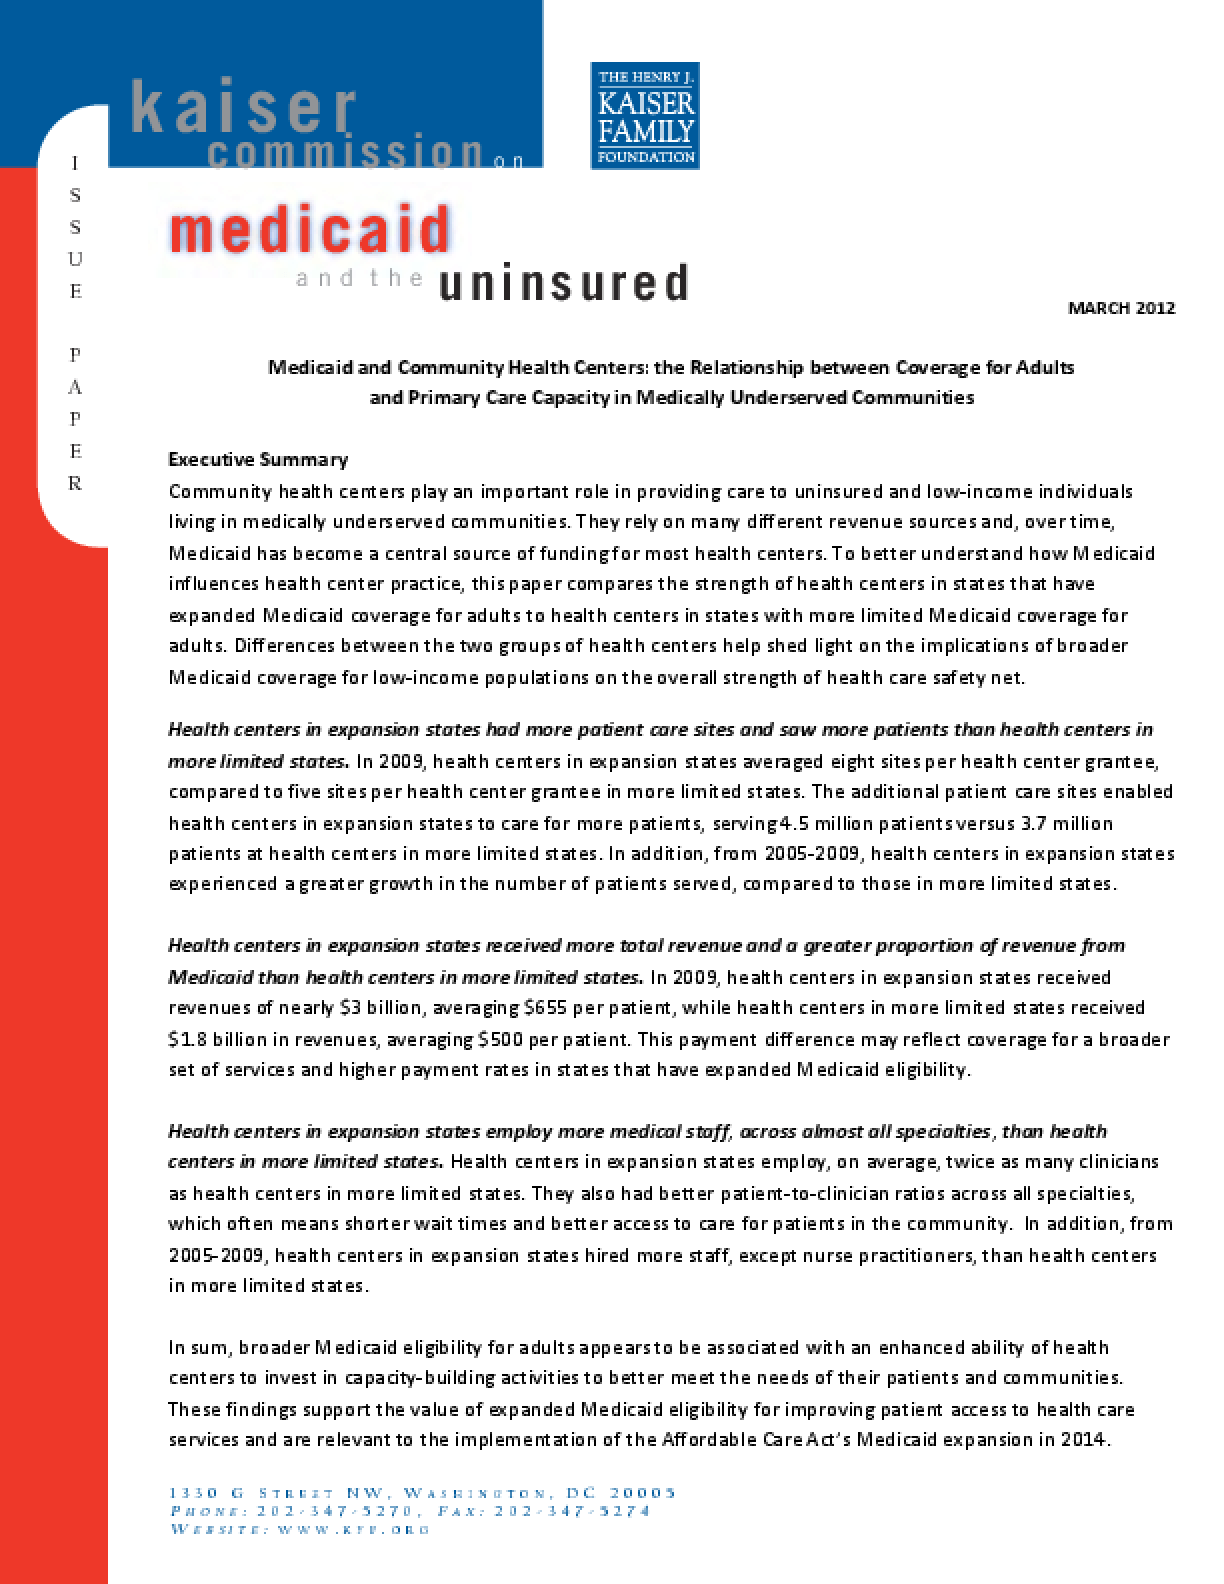 Medicaid and Community Health Centers: The Relationship Between Coverage for Adults and Primary Care Capacity in Medically Underserved Communities